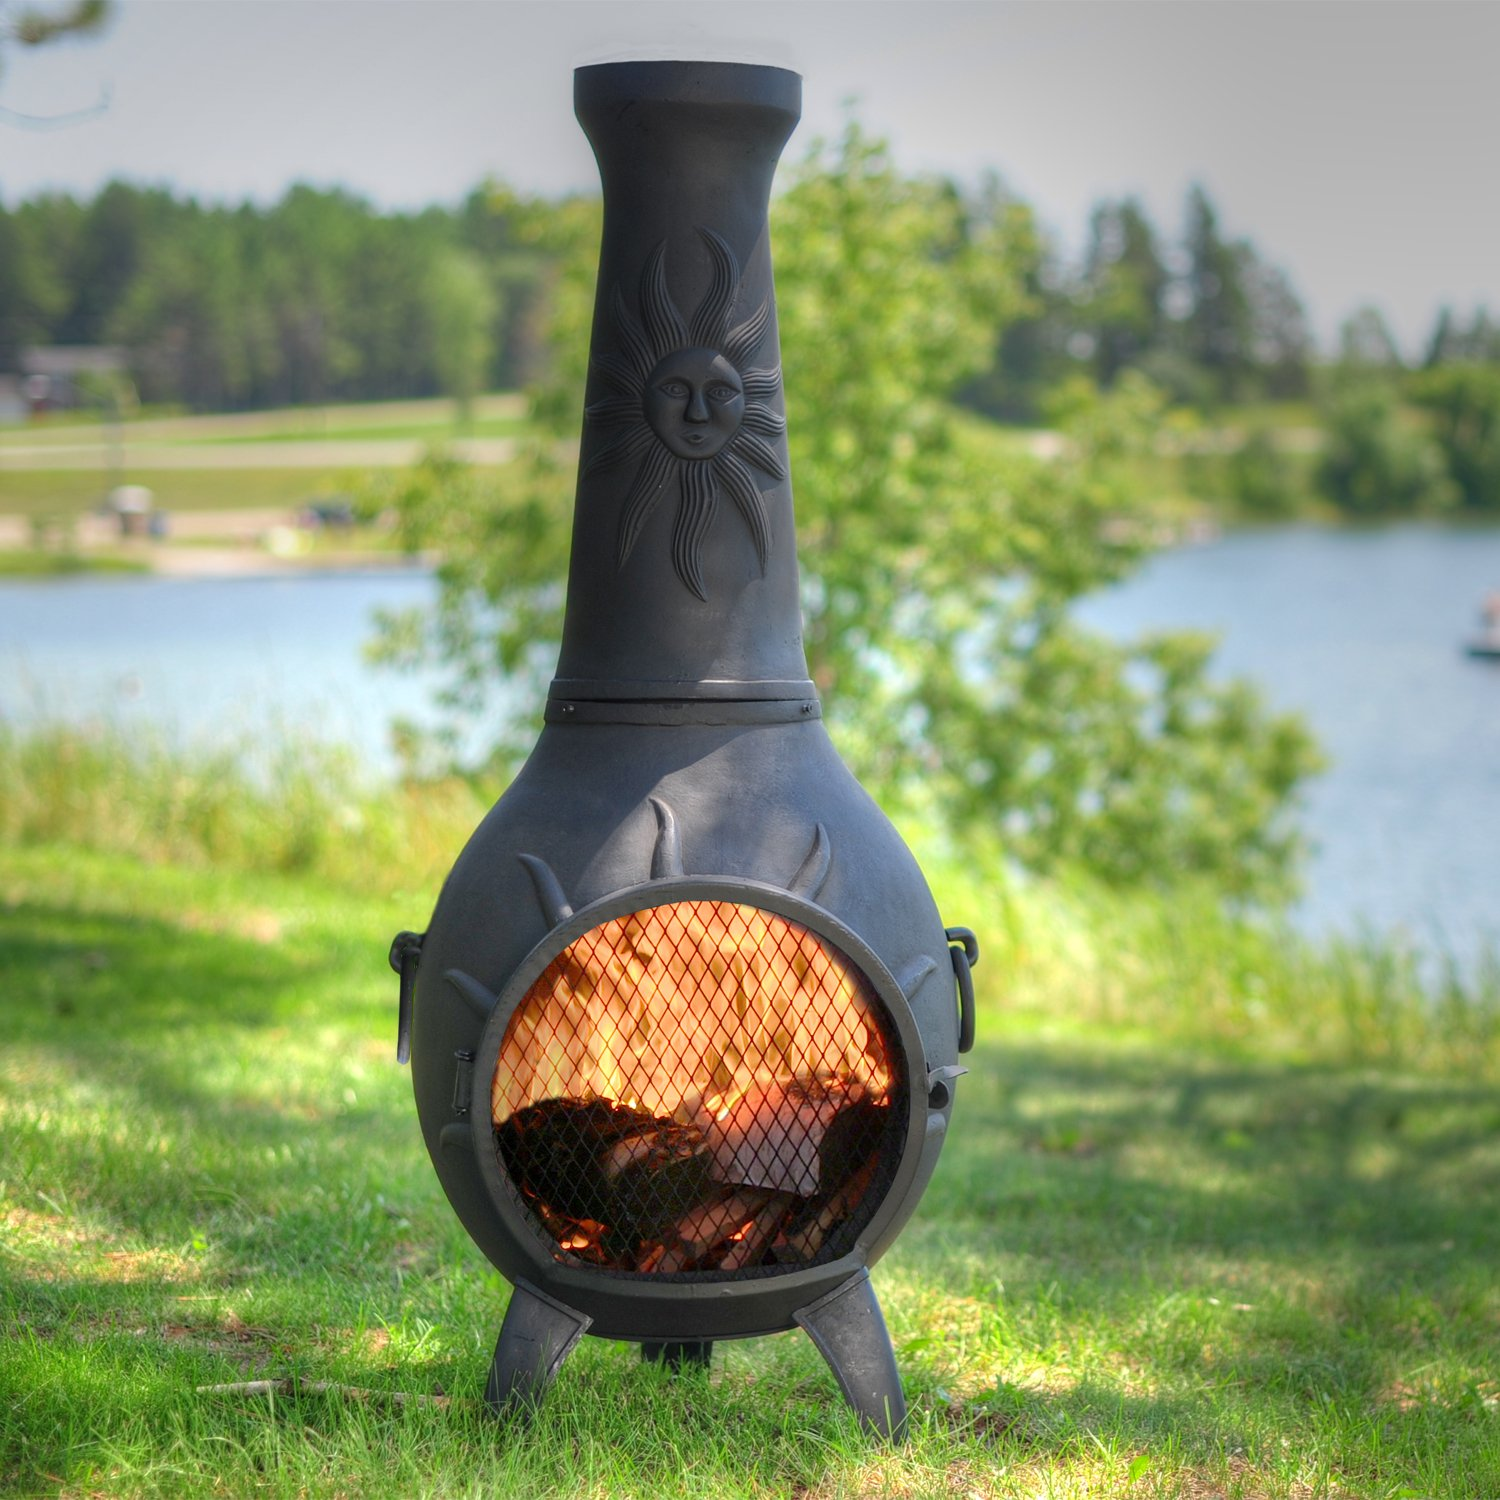 The Blue Rooster Co. Sun Stack Style Cast Aluminum Wood Burning Chiminea in Charcoal.